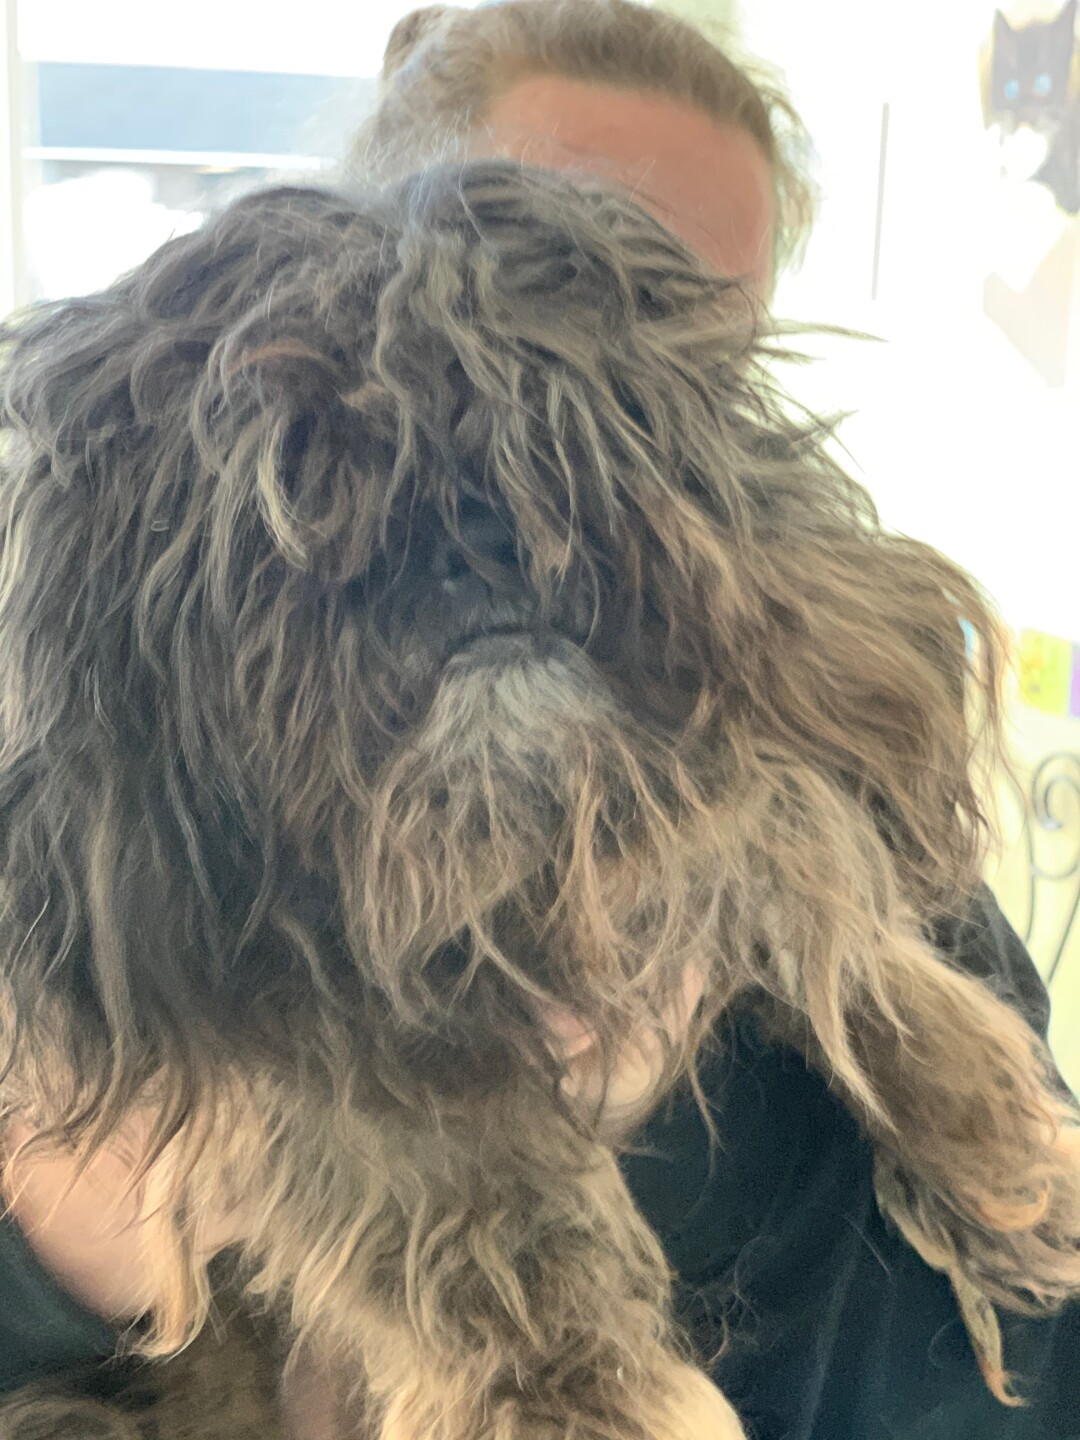 Photos: Local rescue removes almost 9 lbs of matted hair from shih tzu, who has now found forever home